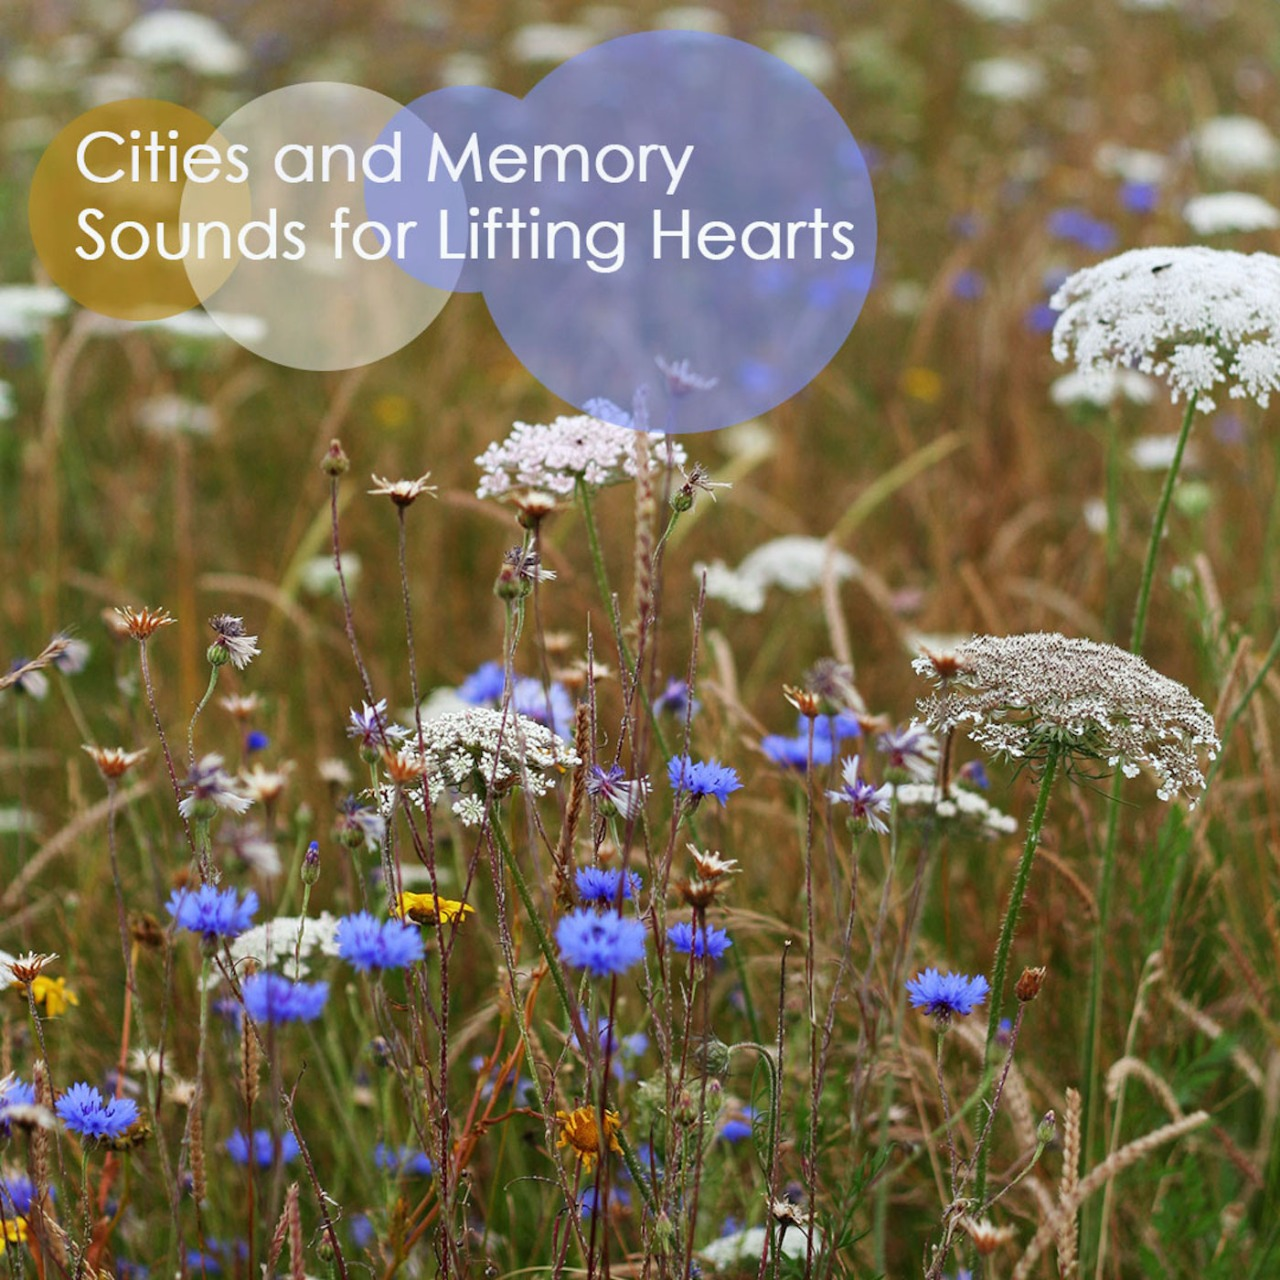 Cites and Memory ~ Sounds for LiftingHearts